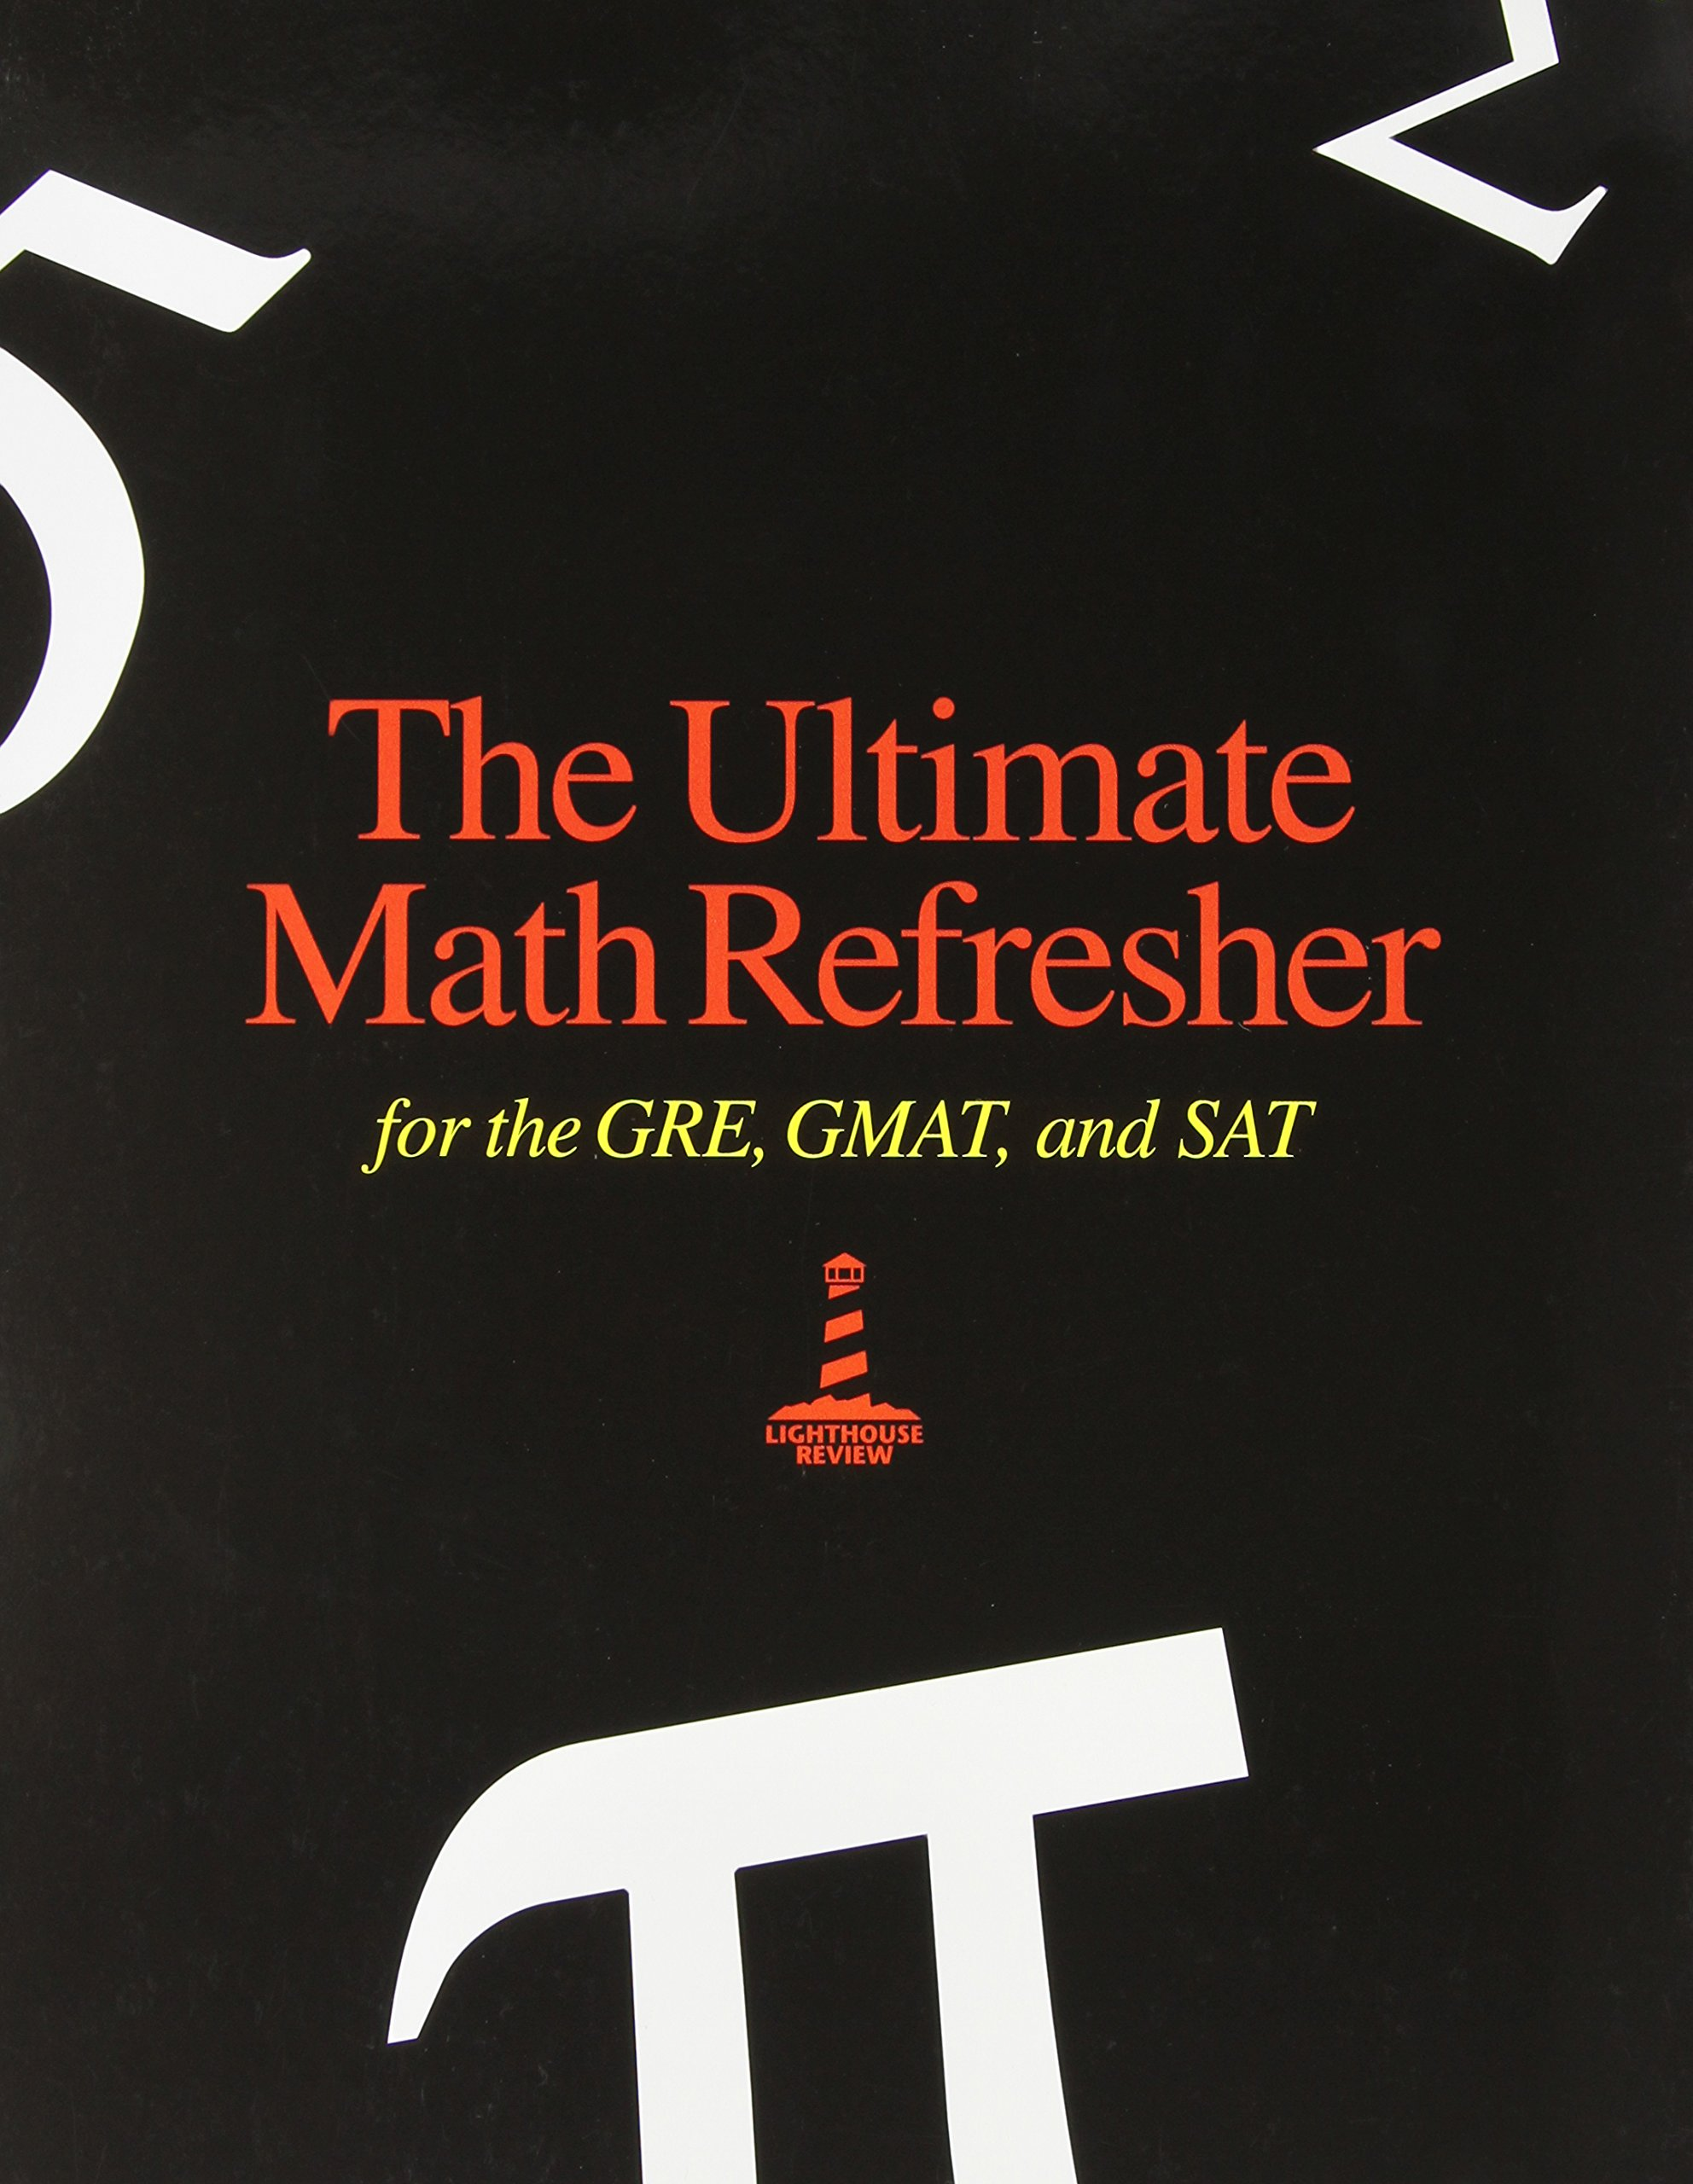 Ultimate Math Refresher for GRE, GMAT, and SAT